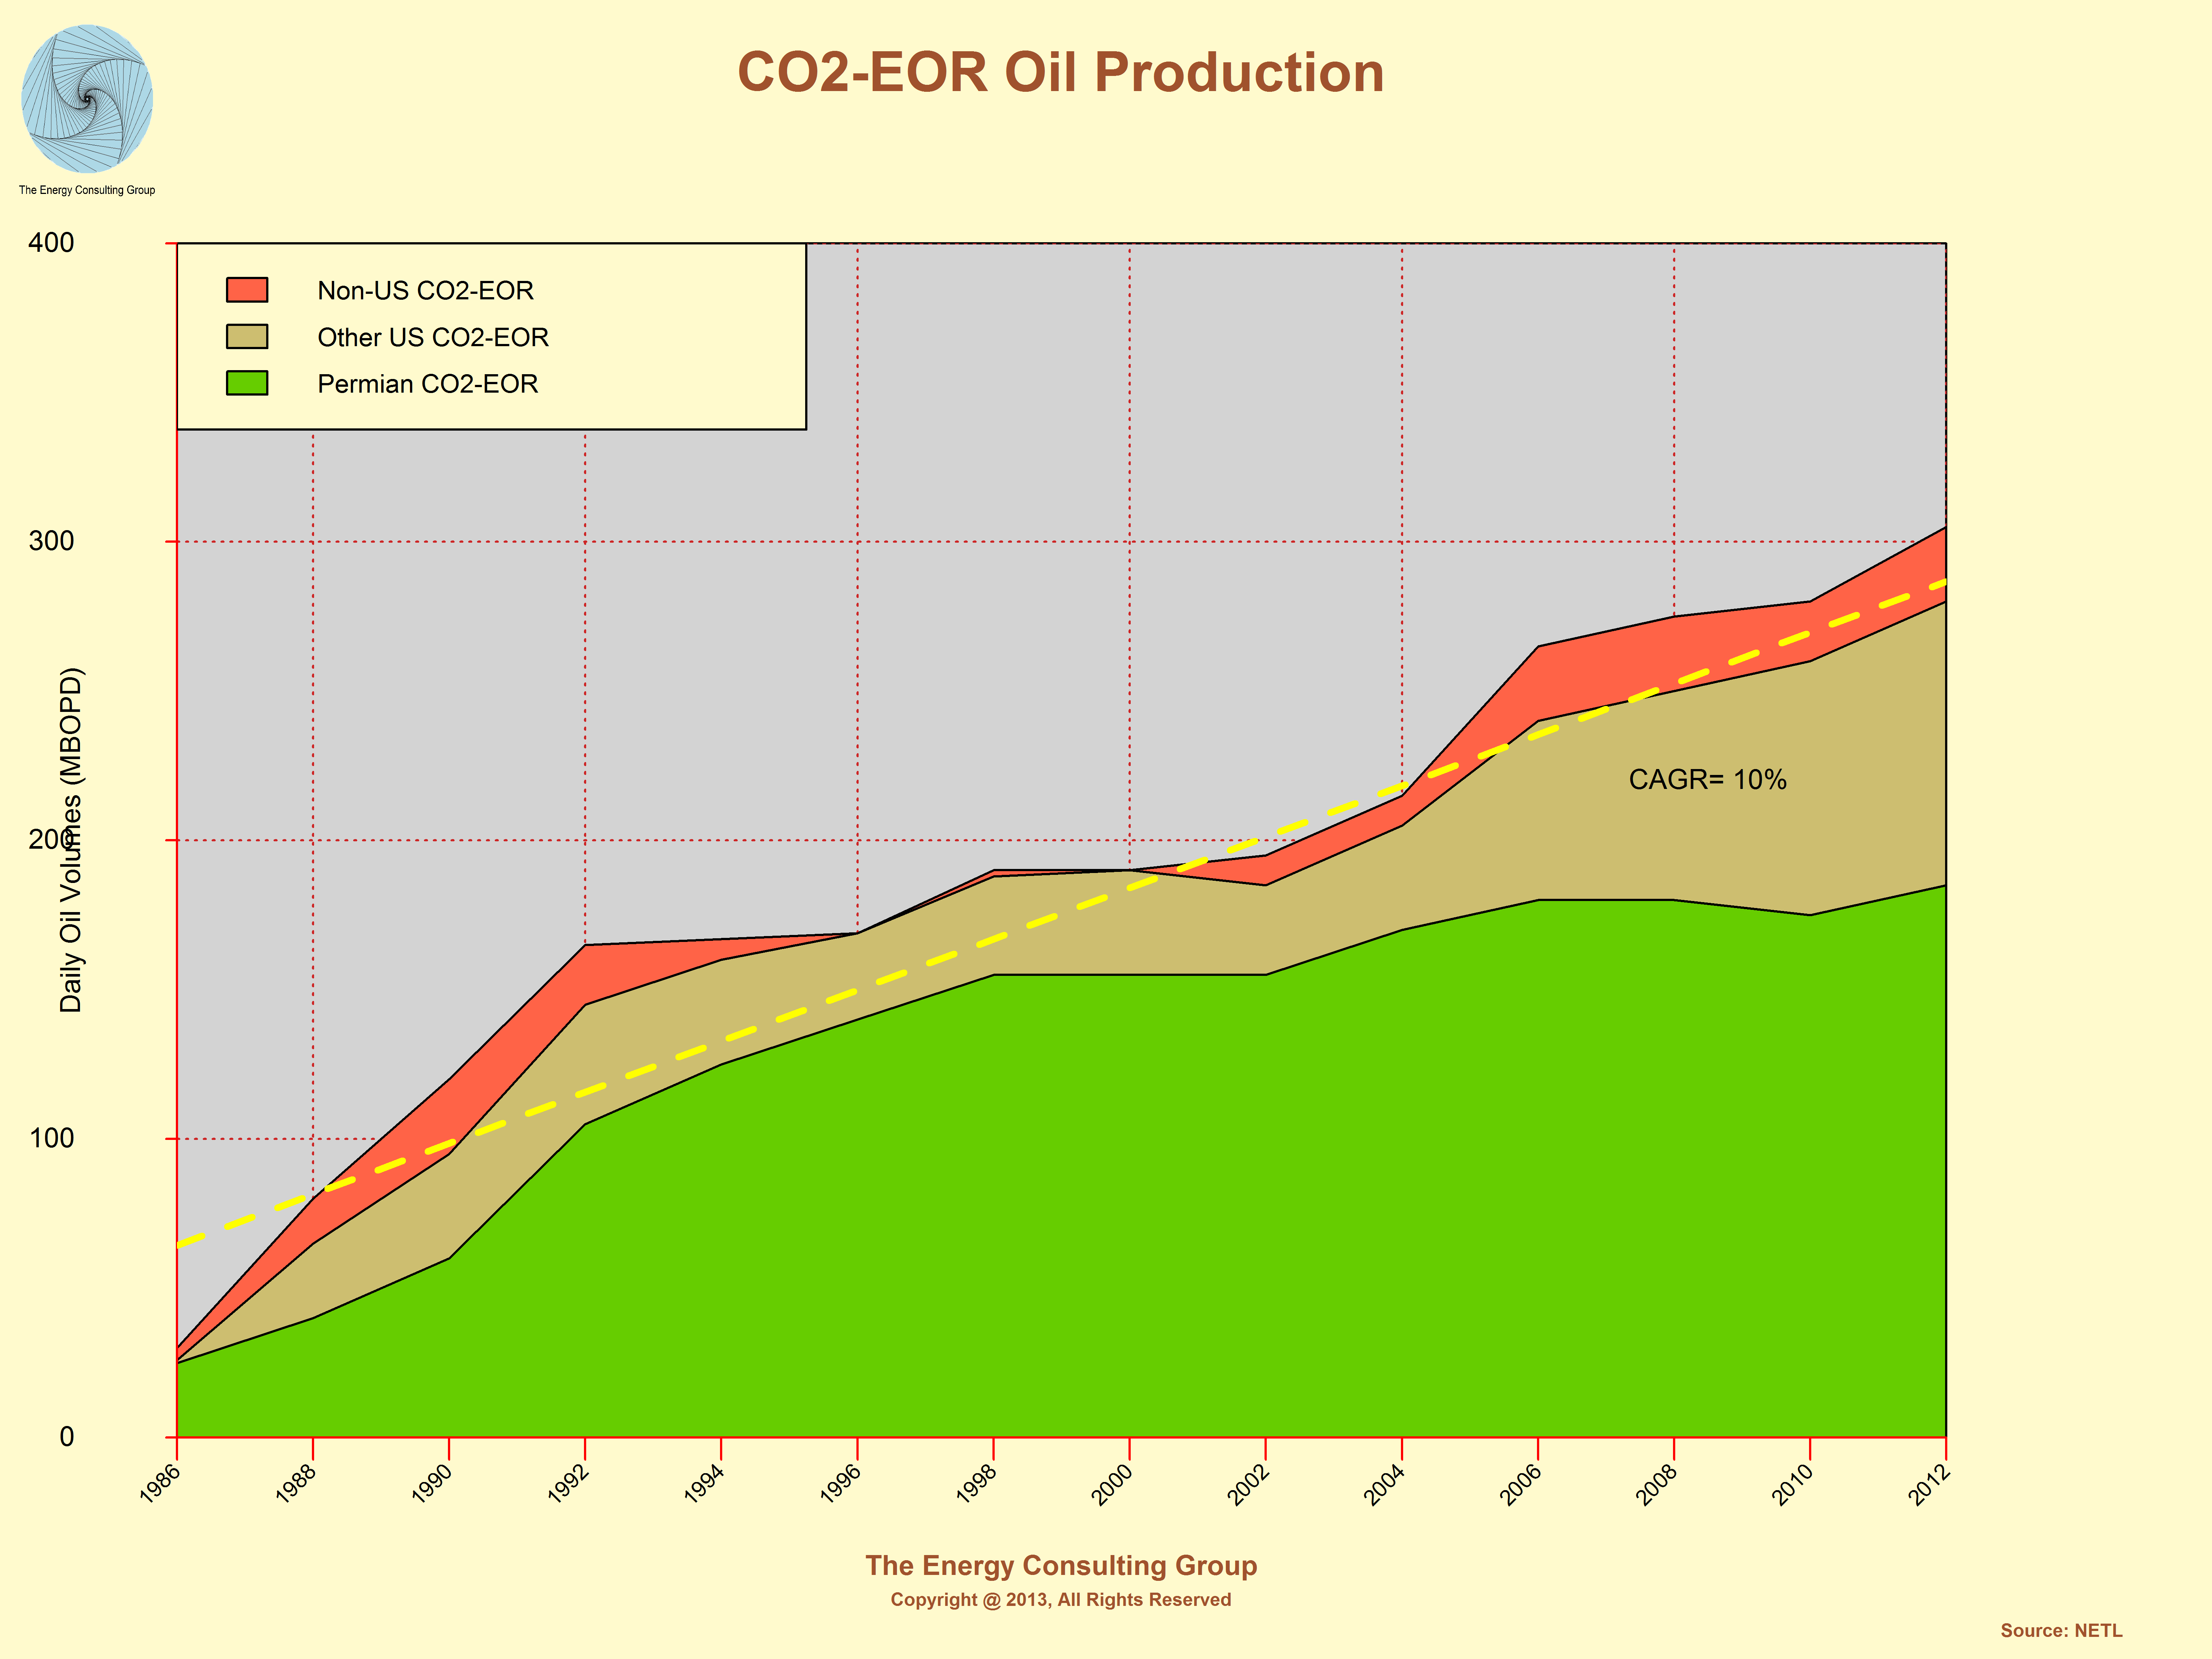 Co2 Eor Oil Production For The Permian Basin